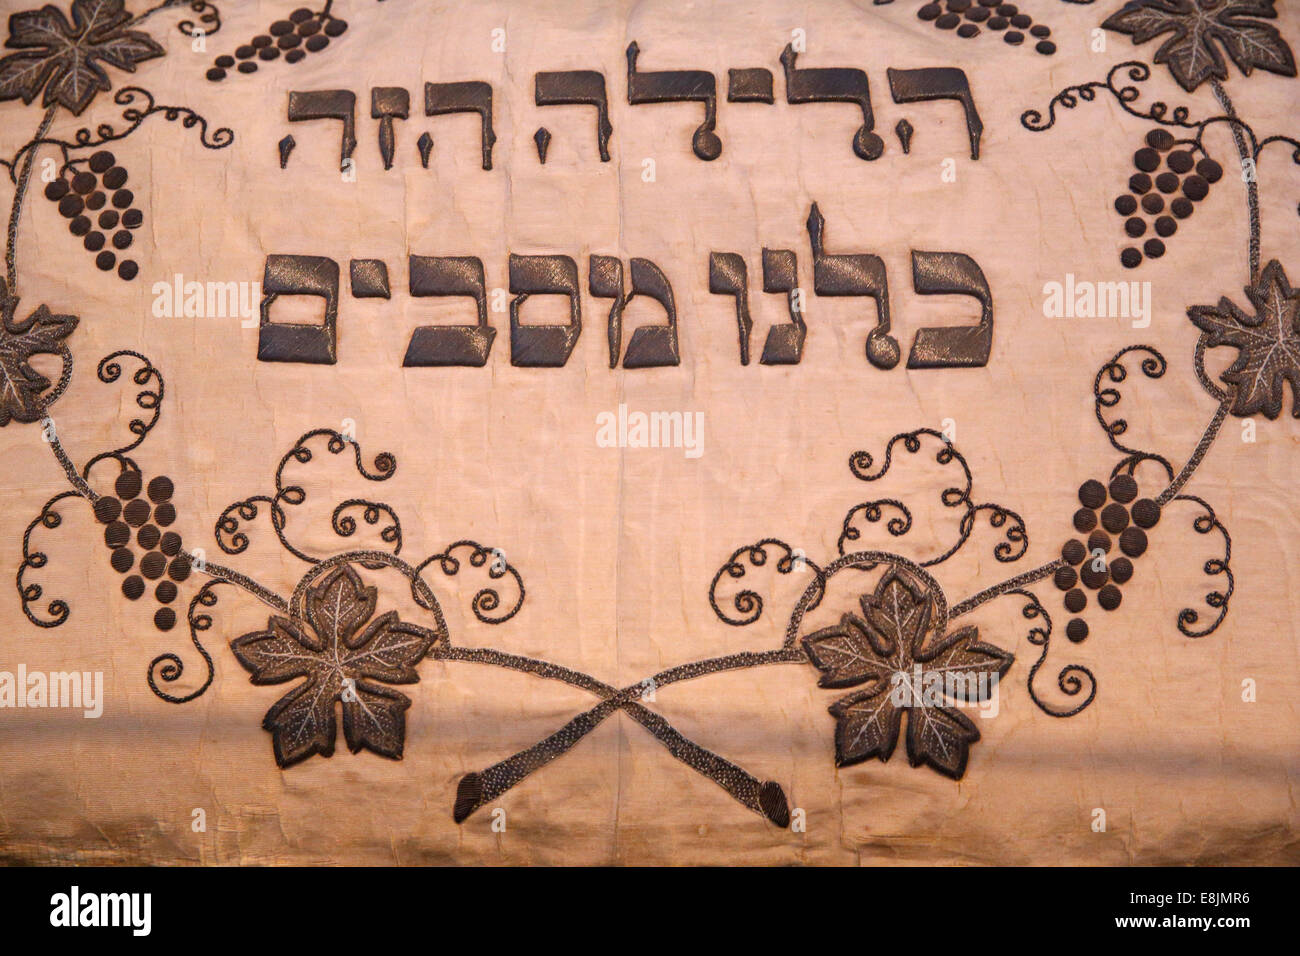 The Israel Museum. Pillowcase used during the Seder meal. Germany, 19th century. - Stock Image